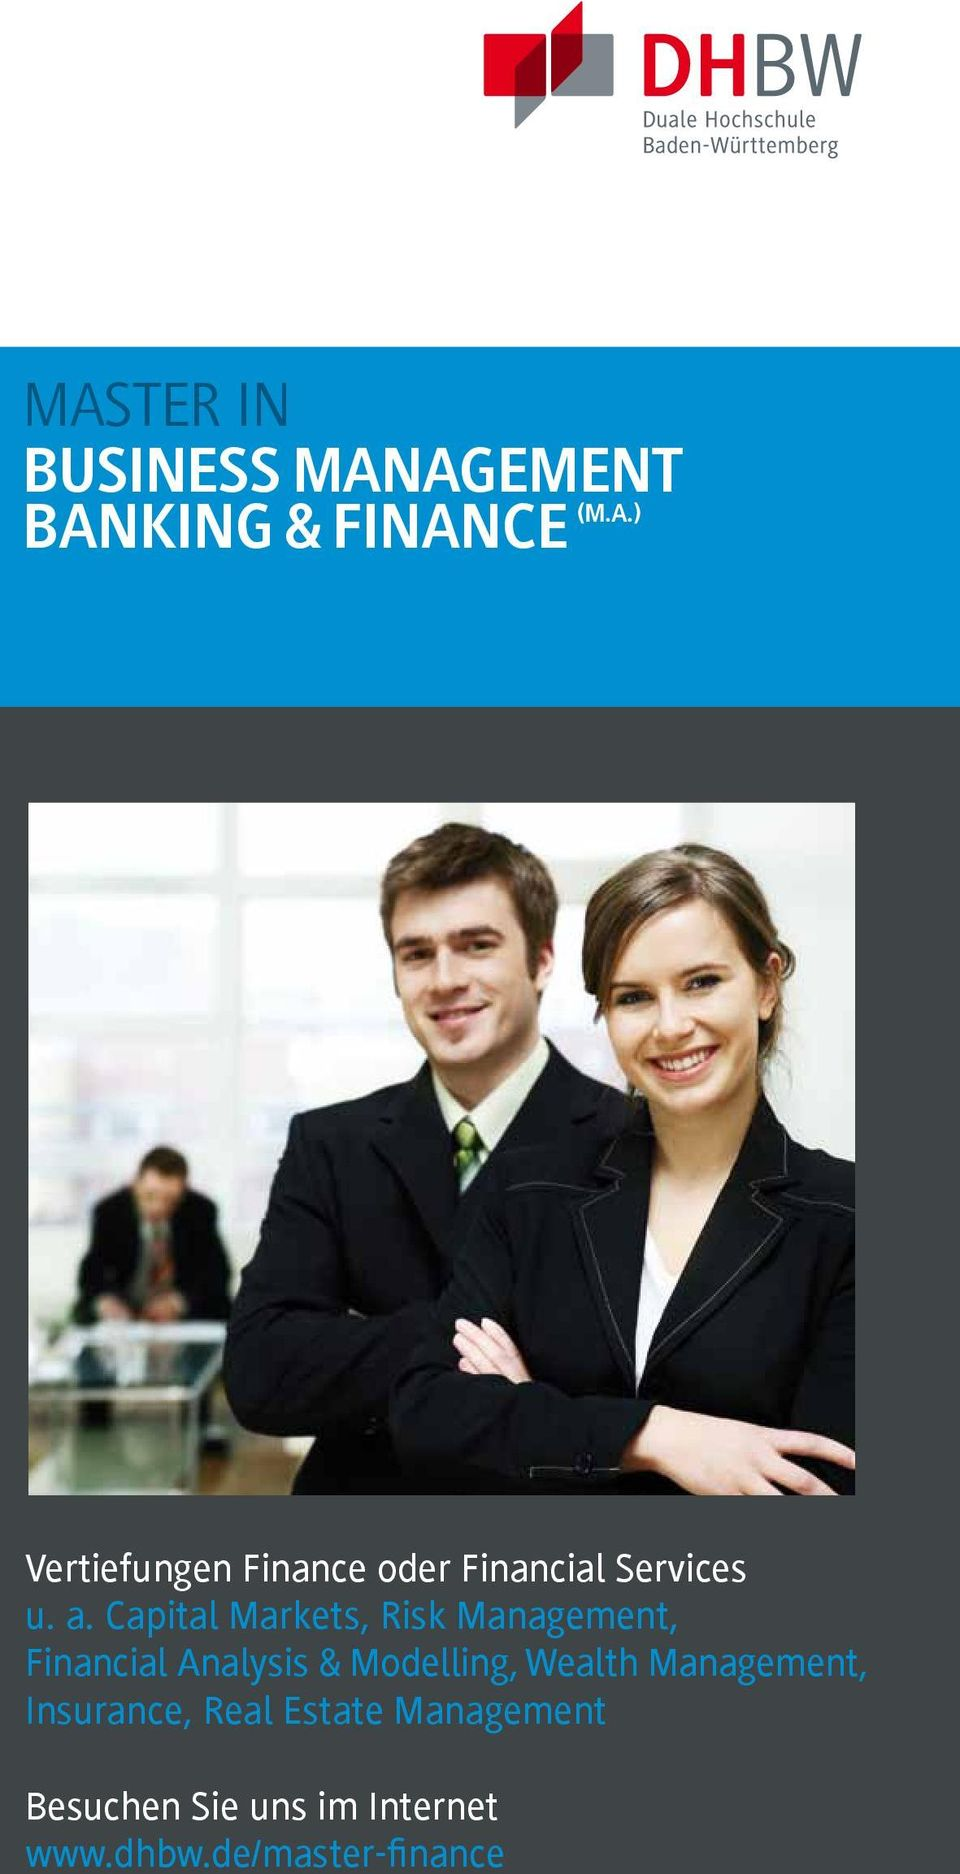 Capital Markets, Risk Management, Financial Analysis & Modelling,